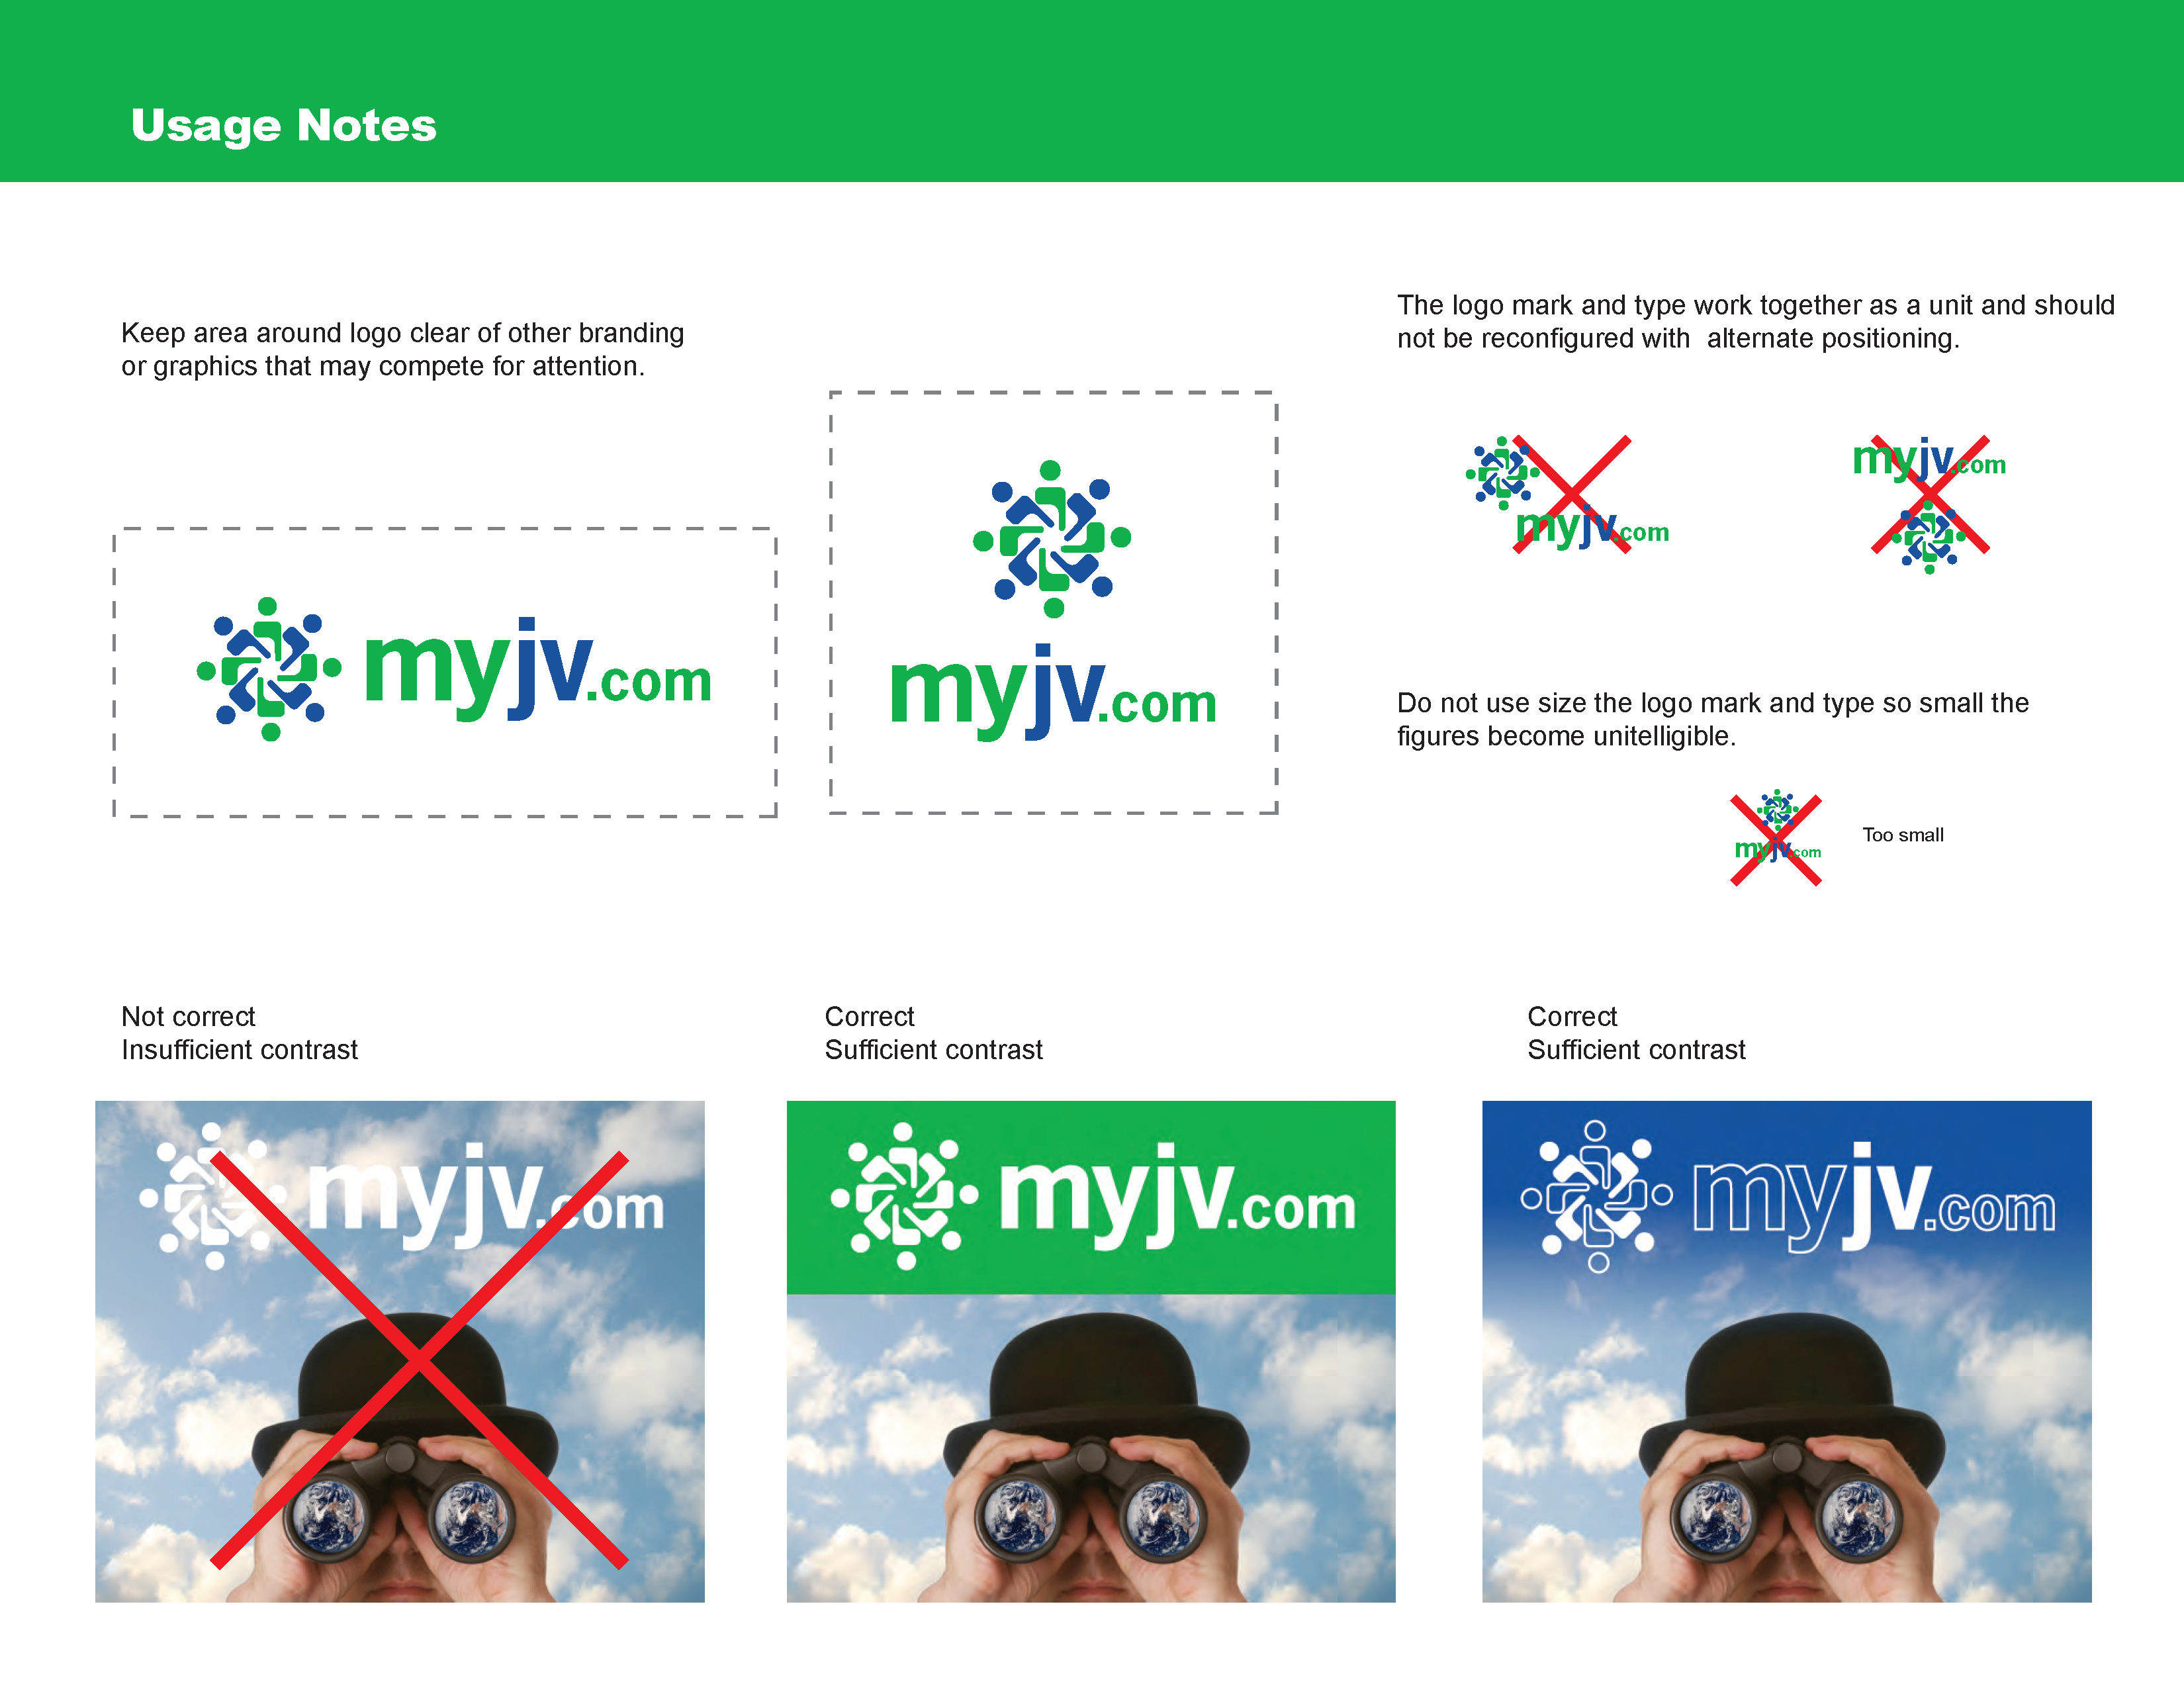 MyJV.com Branding Identity Guidelines Page 2 Logo and Color Usage Notes